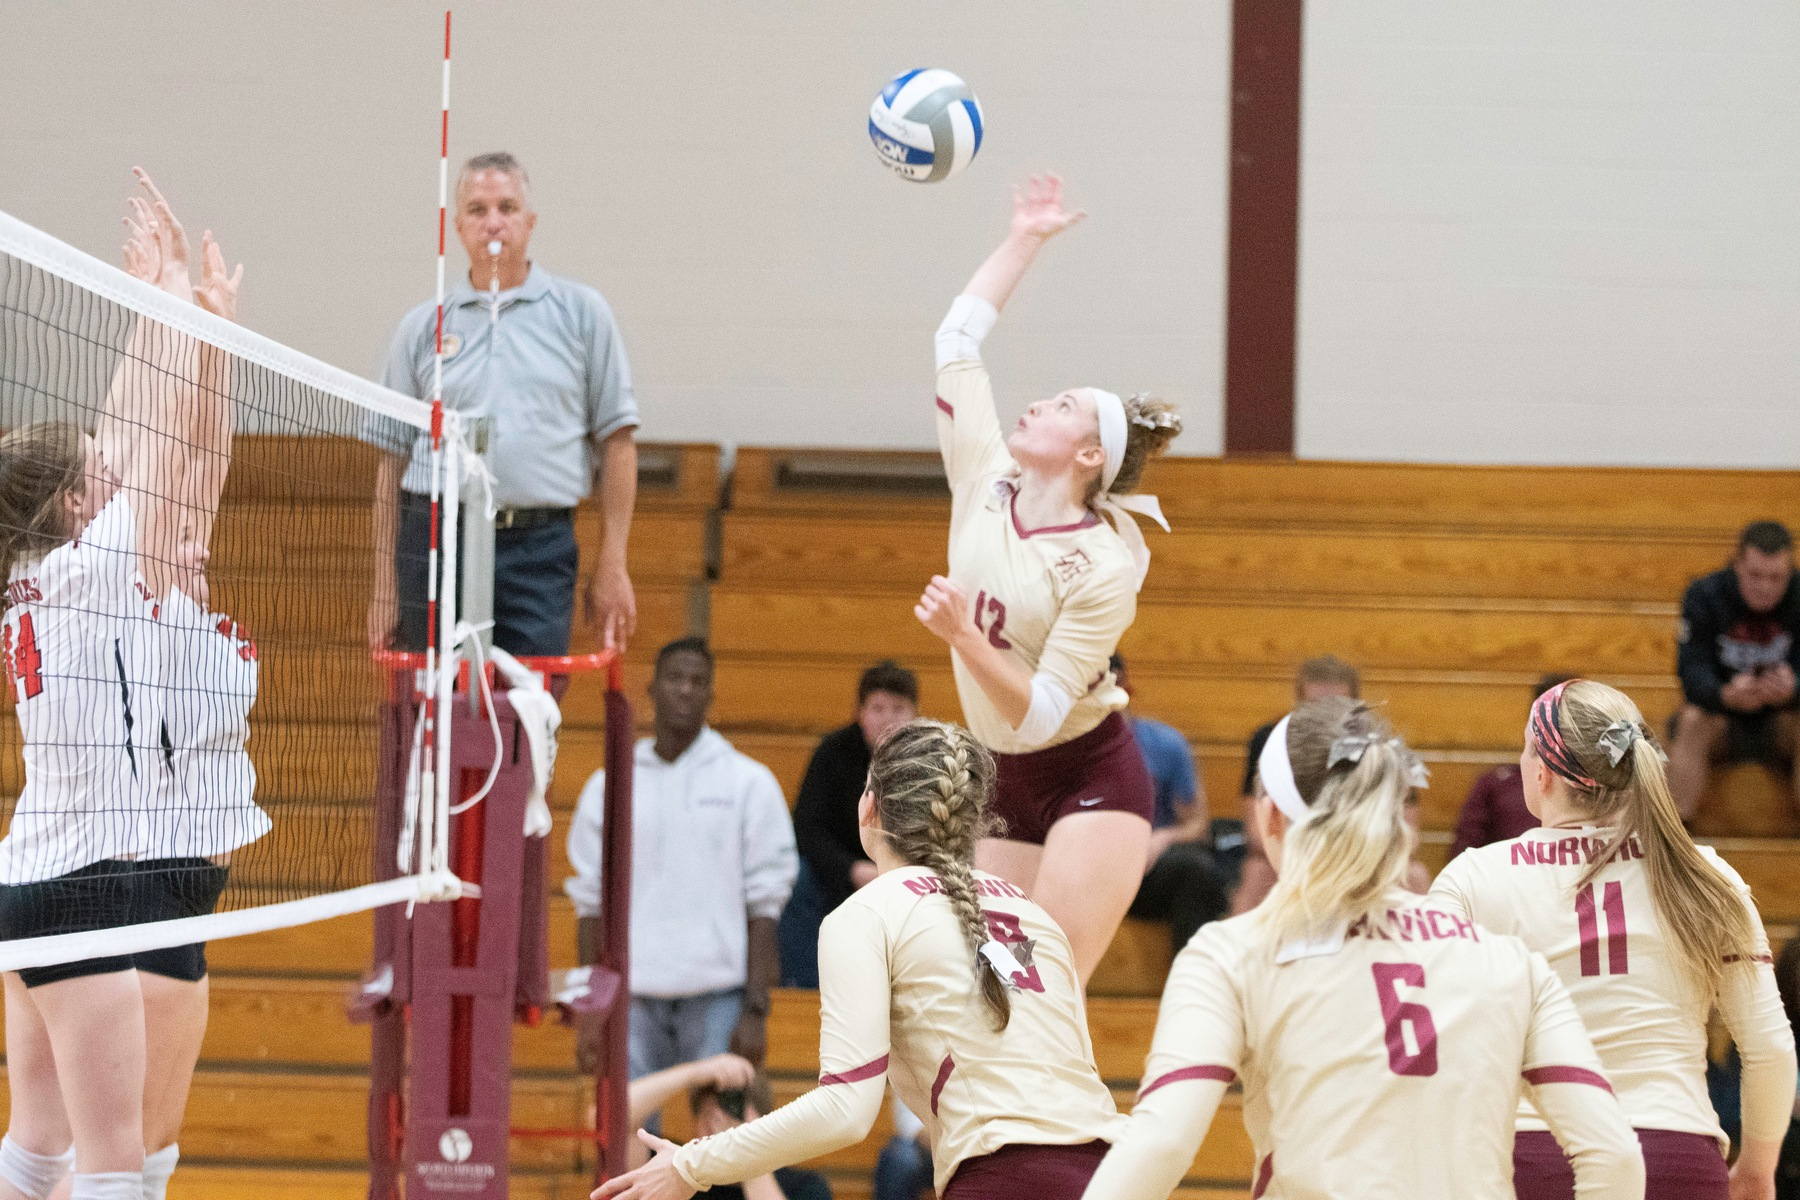 Volleyball: Cadets split GNAC tri-match, defeat St. Joseph (Conn.) 3-2